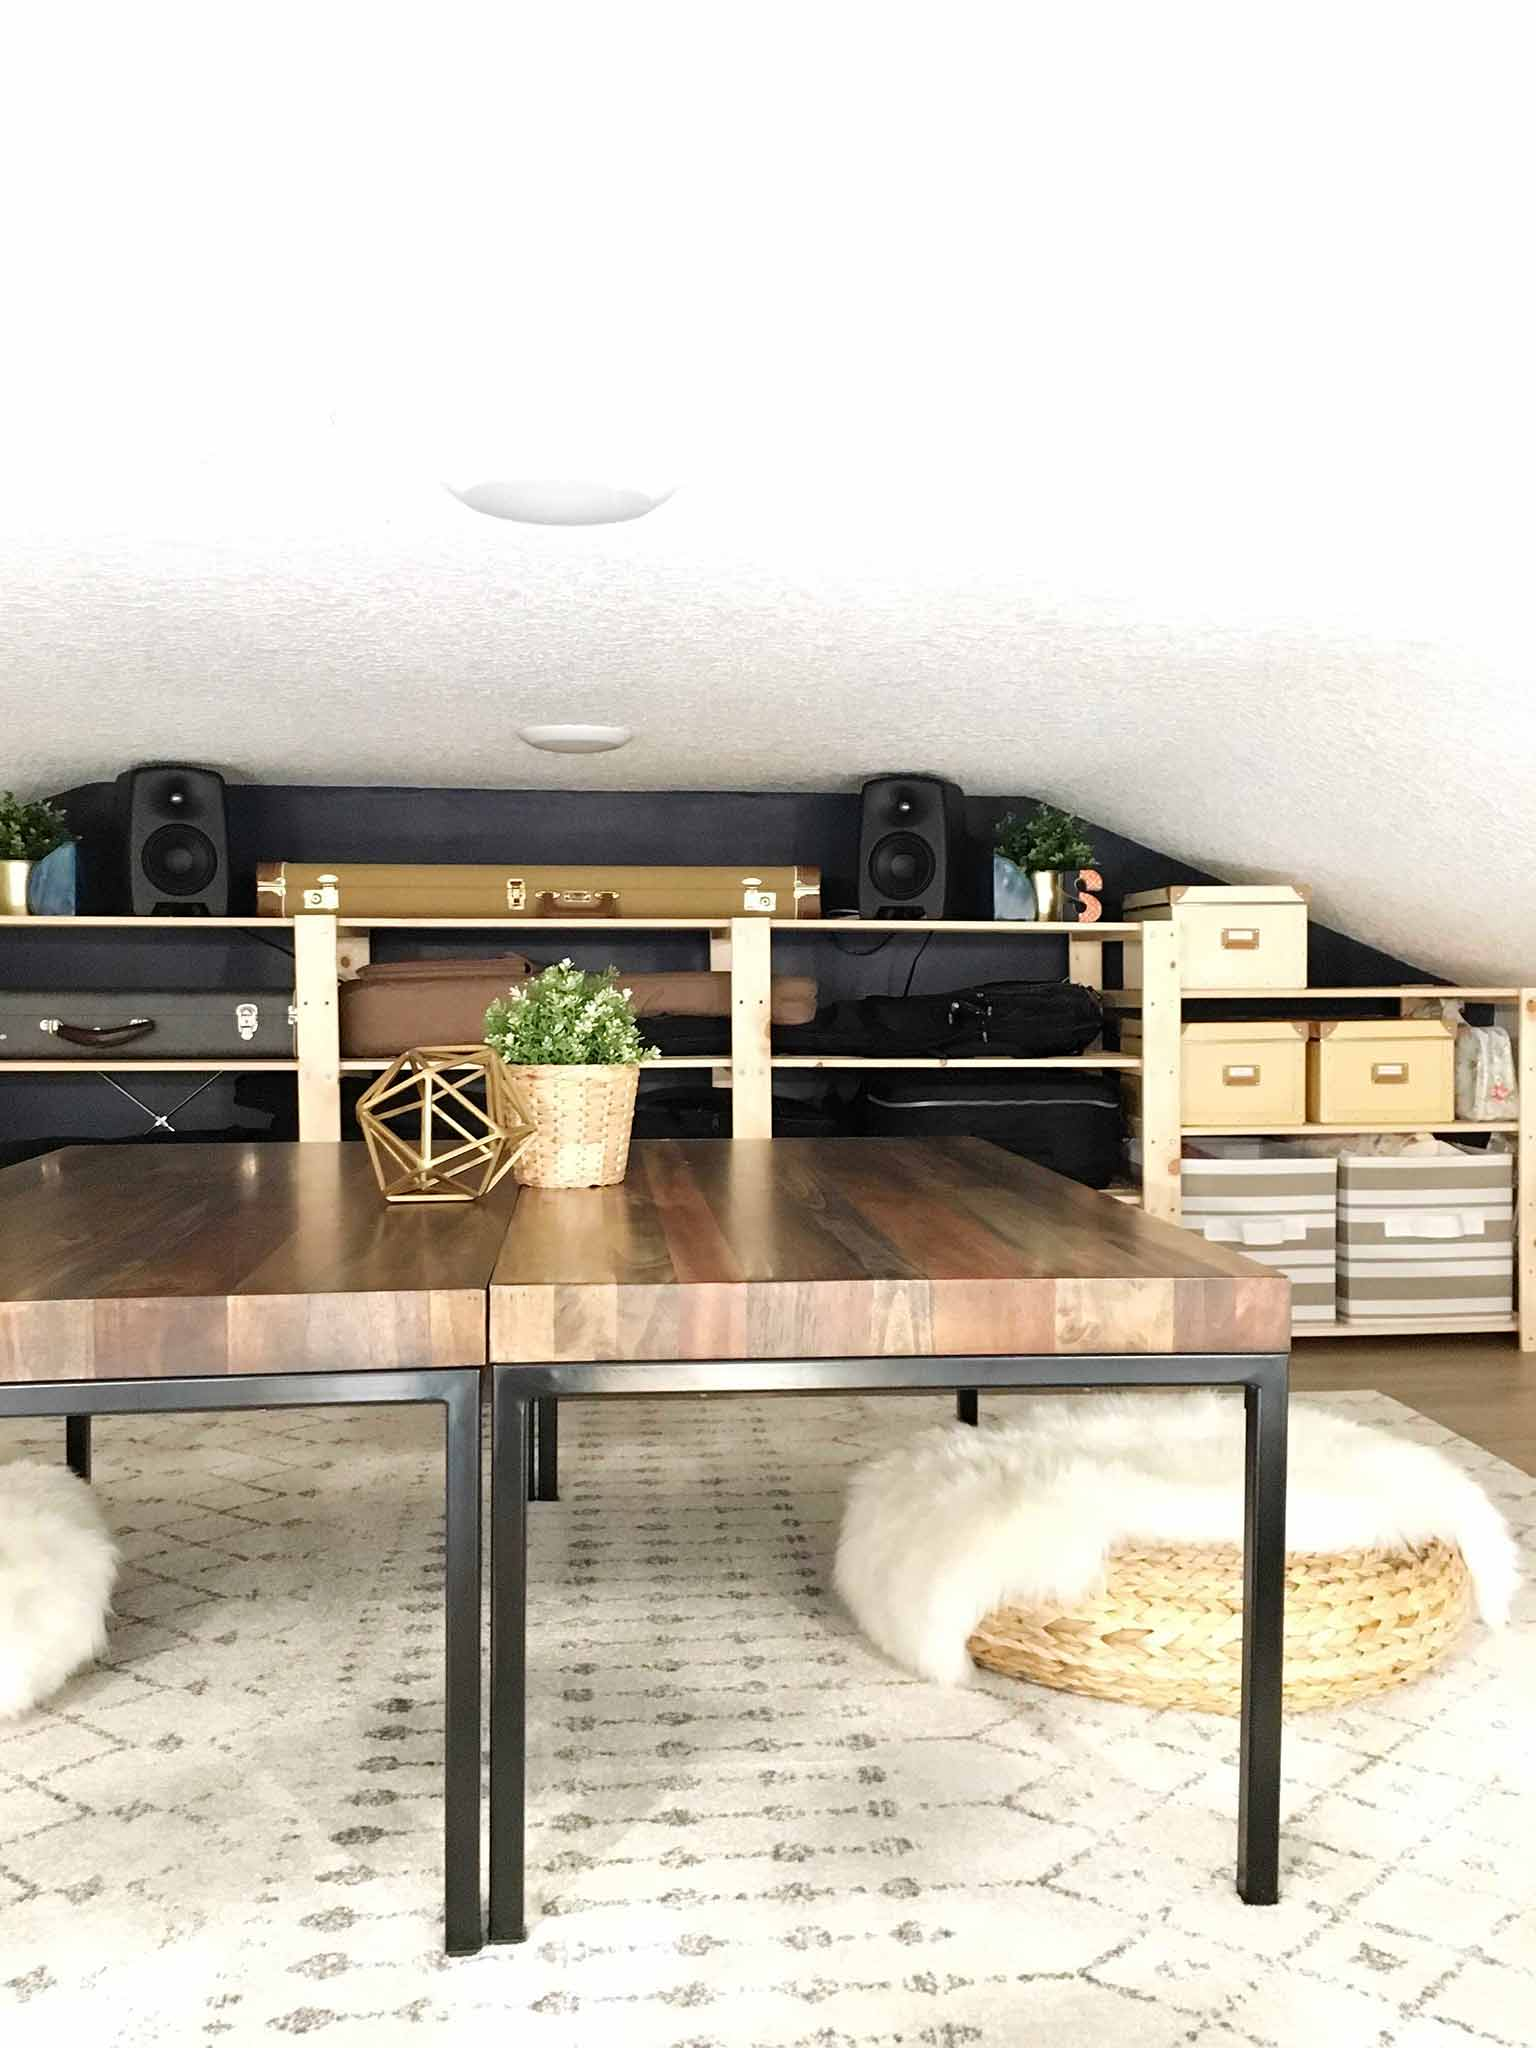 IKEA HEJNE Shelving Hack in Loft Space - guitar storage - That Homebird Life Blog